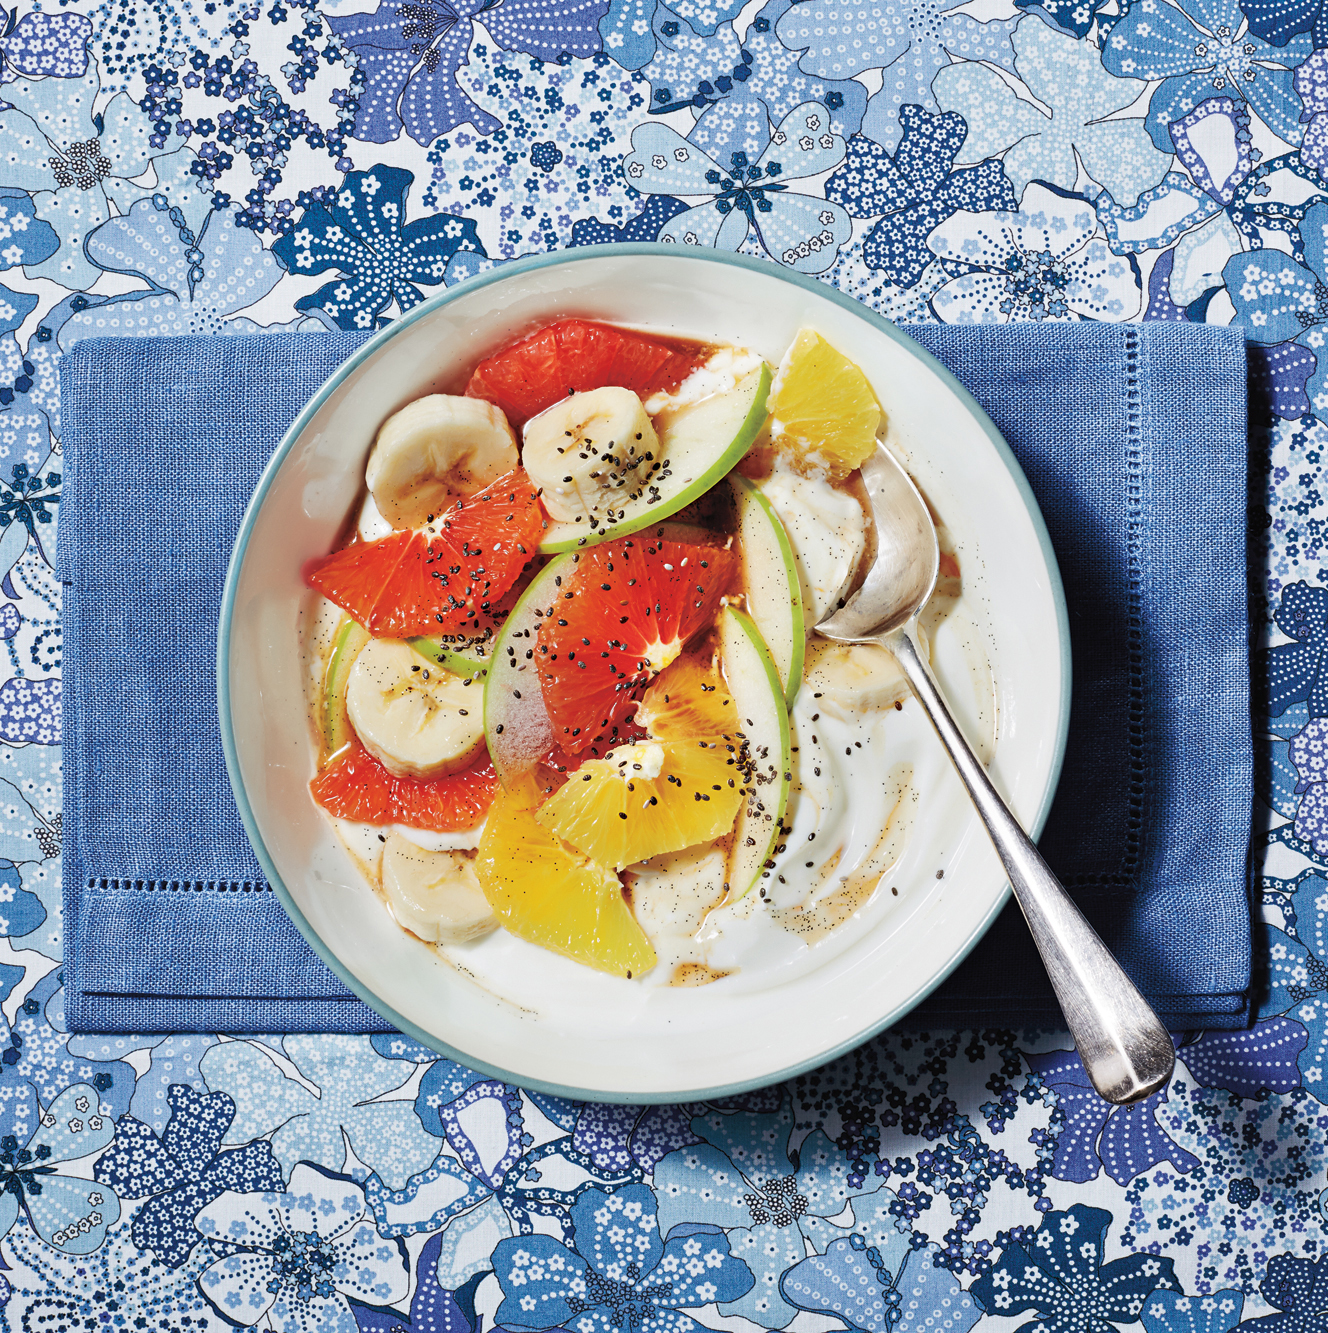 Grapefruit Salad with Vanilla Syrup and Yogurt